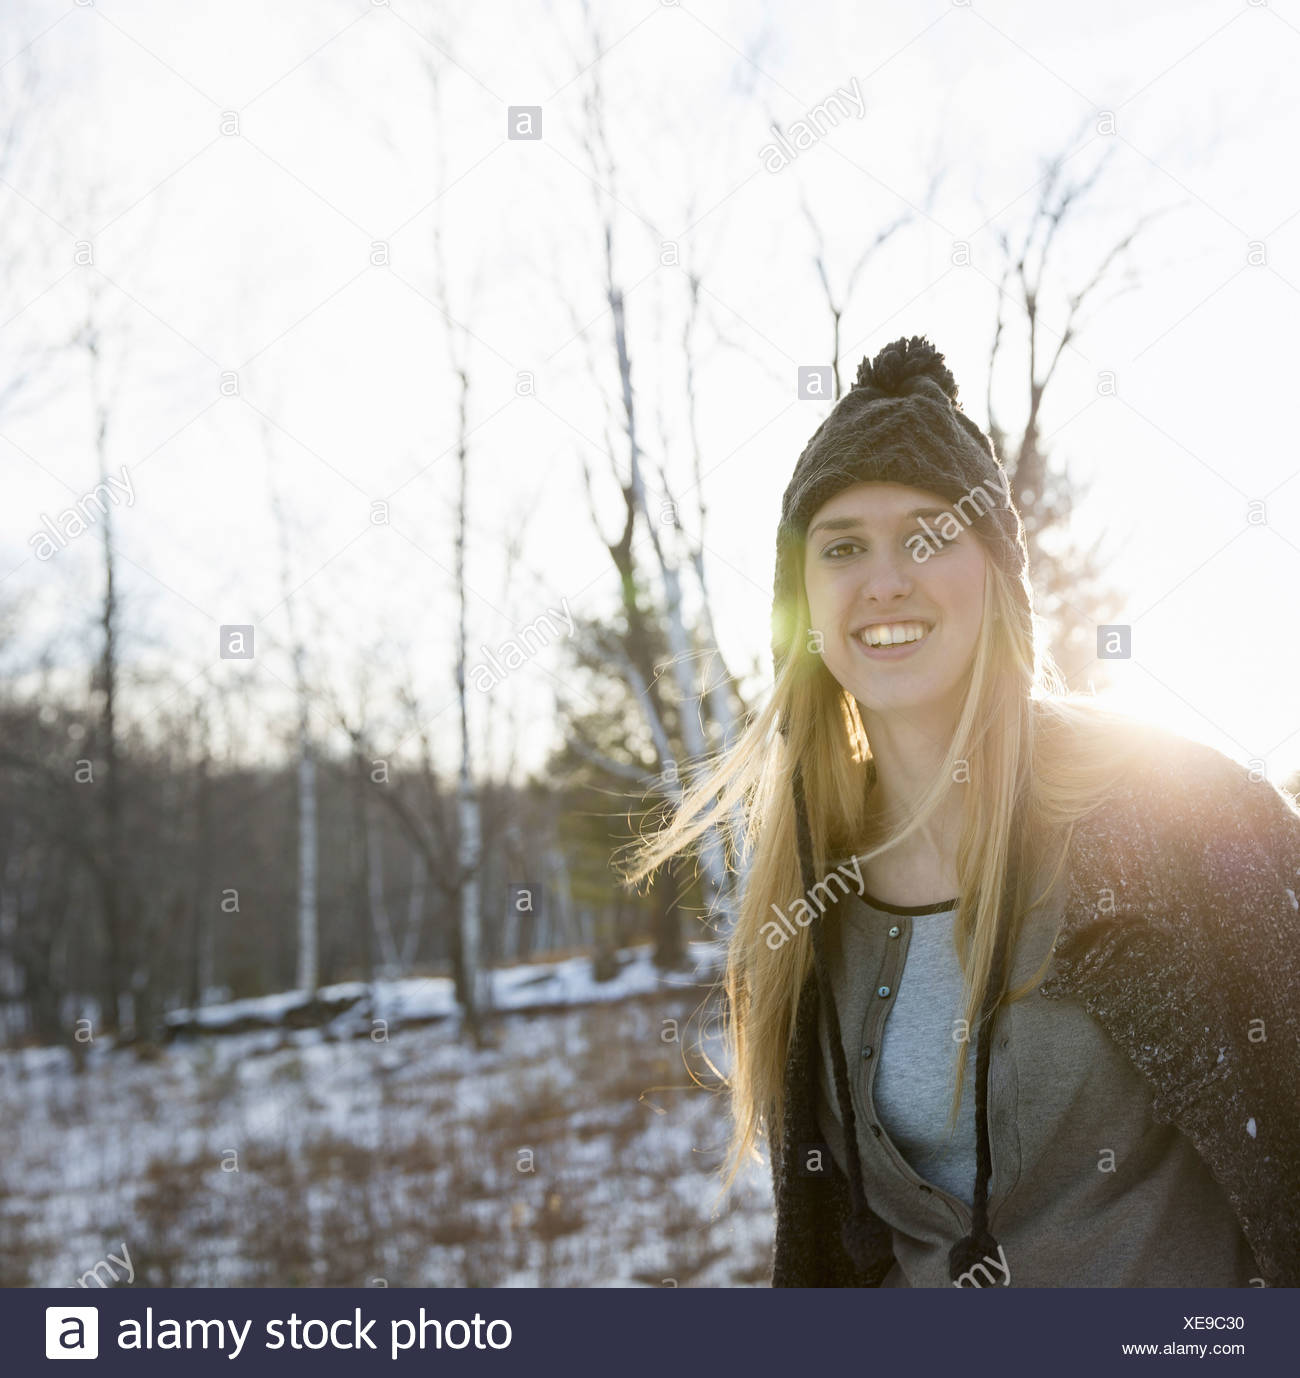 A young woman with blonde hair and a knitted woollen hat and coat Outdoors on a winter's day Snow on the ground - Stock Image